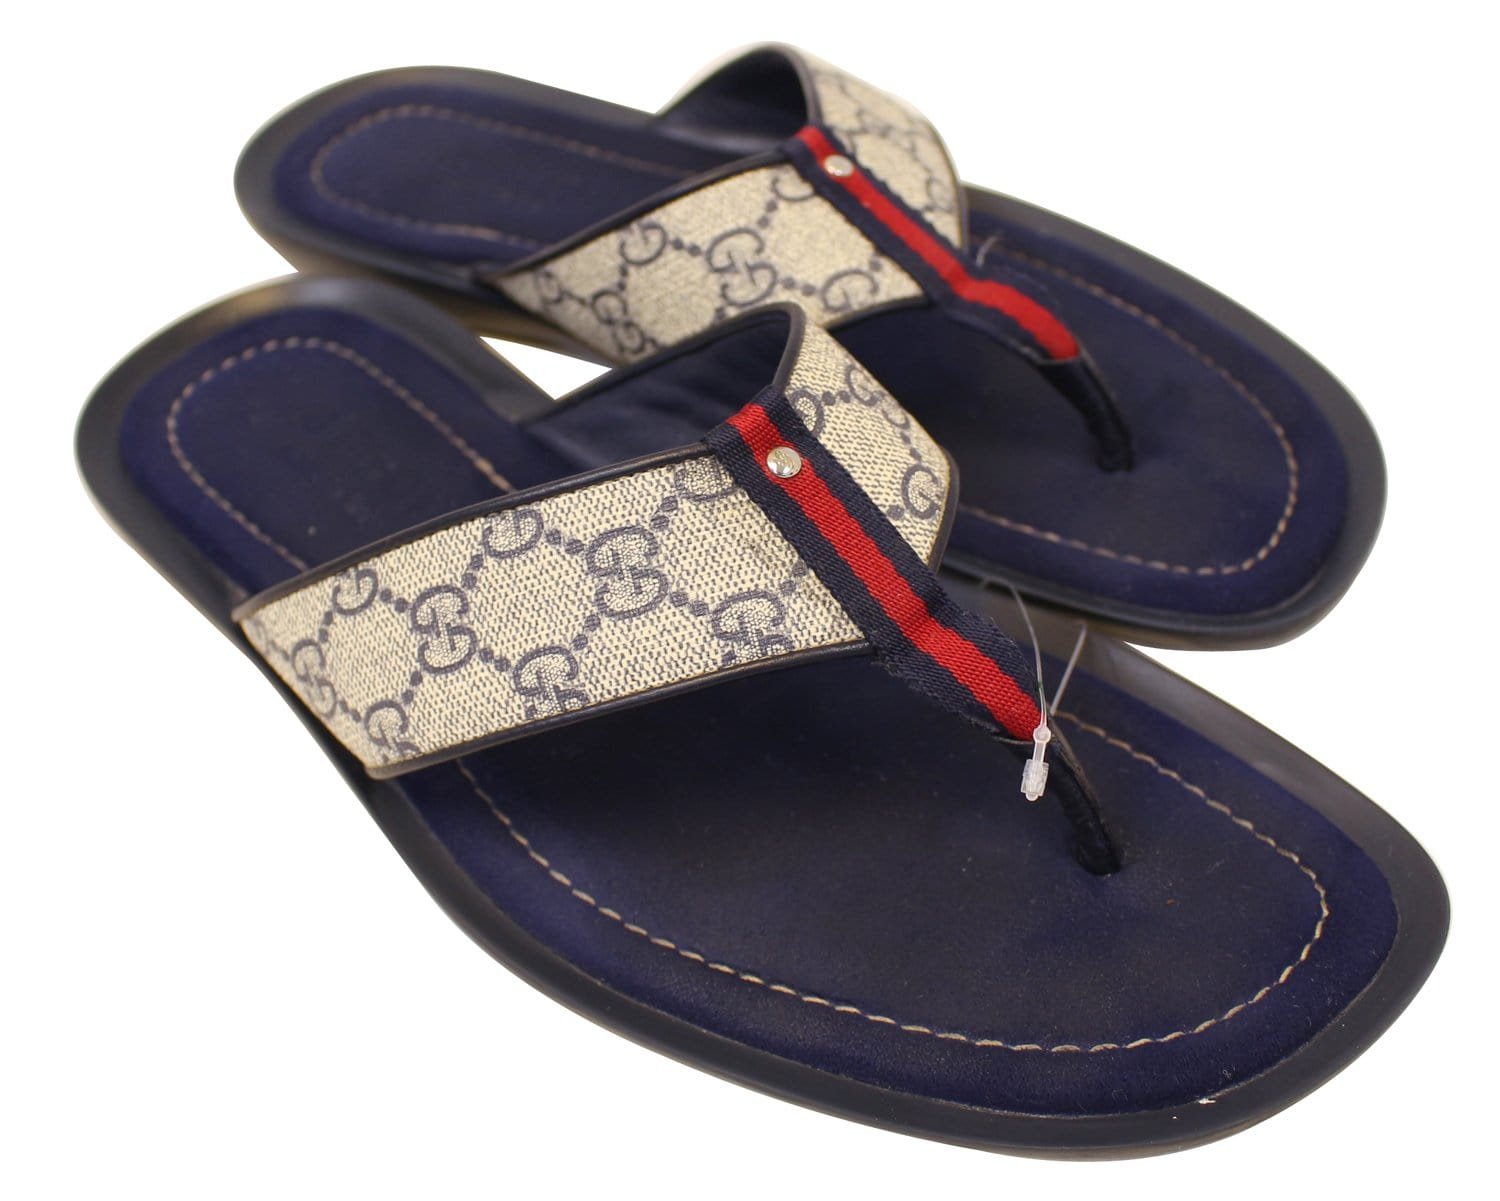 Gucci Mens Gg Supreme Blue Flip Flops Sandals Size 9 G-7231